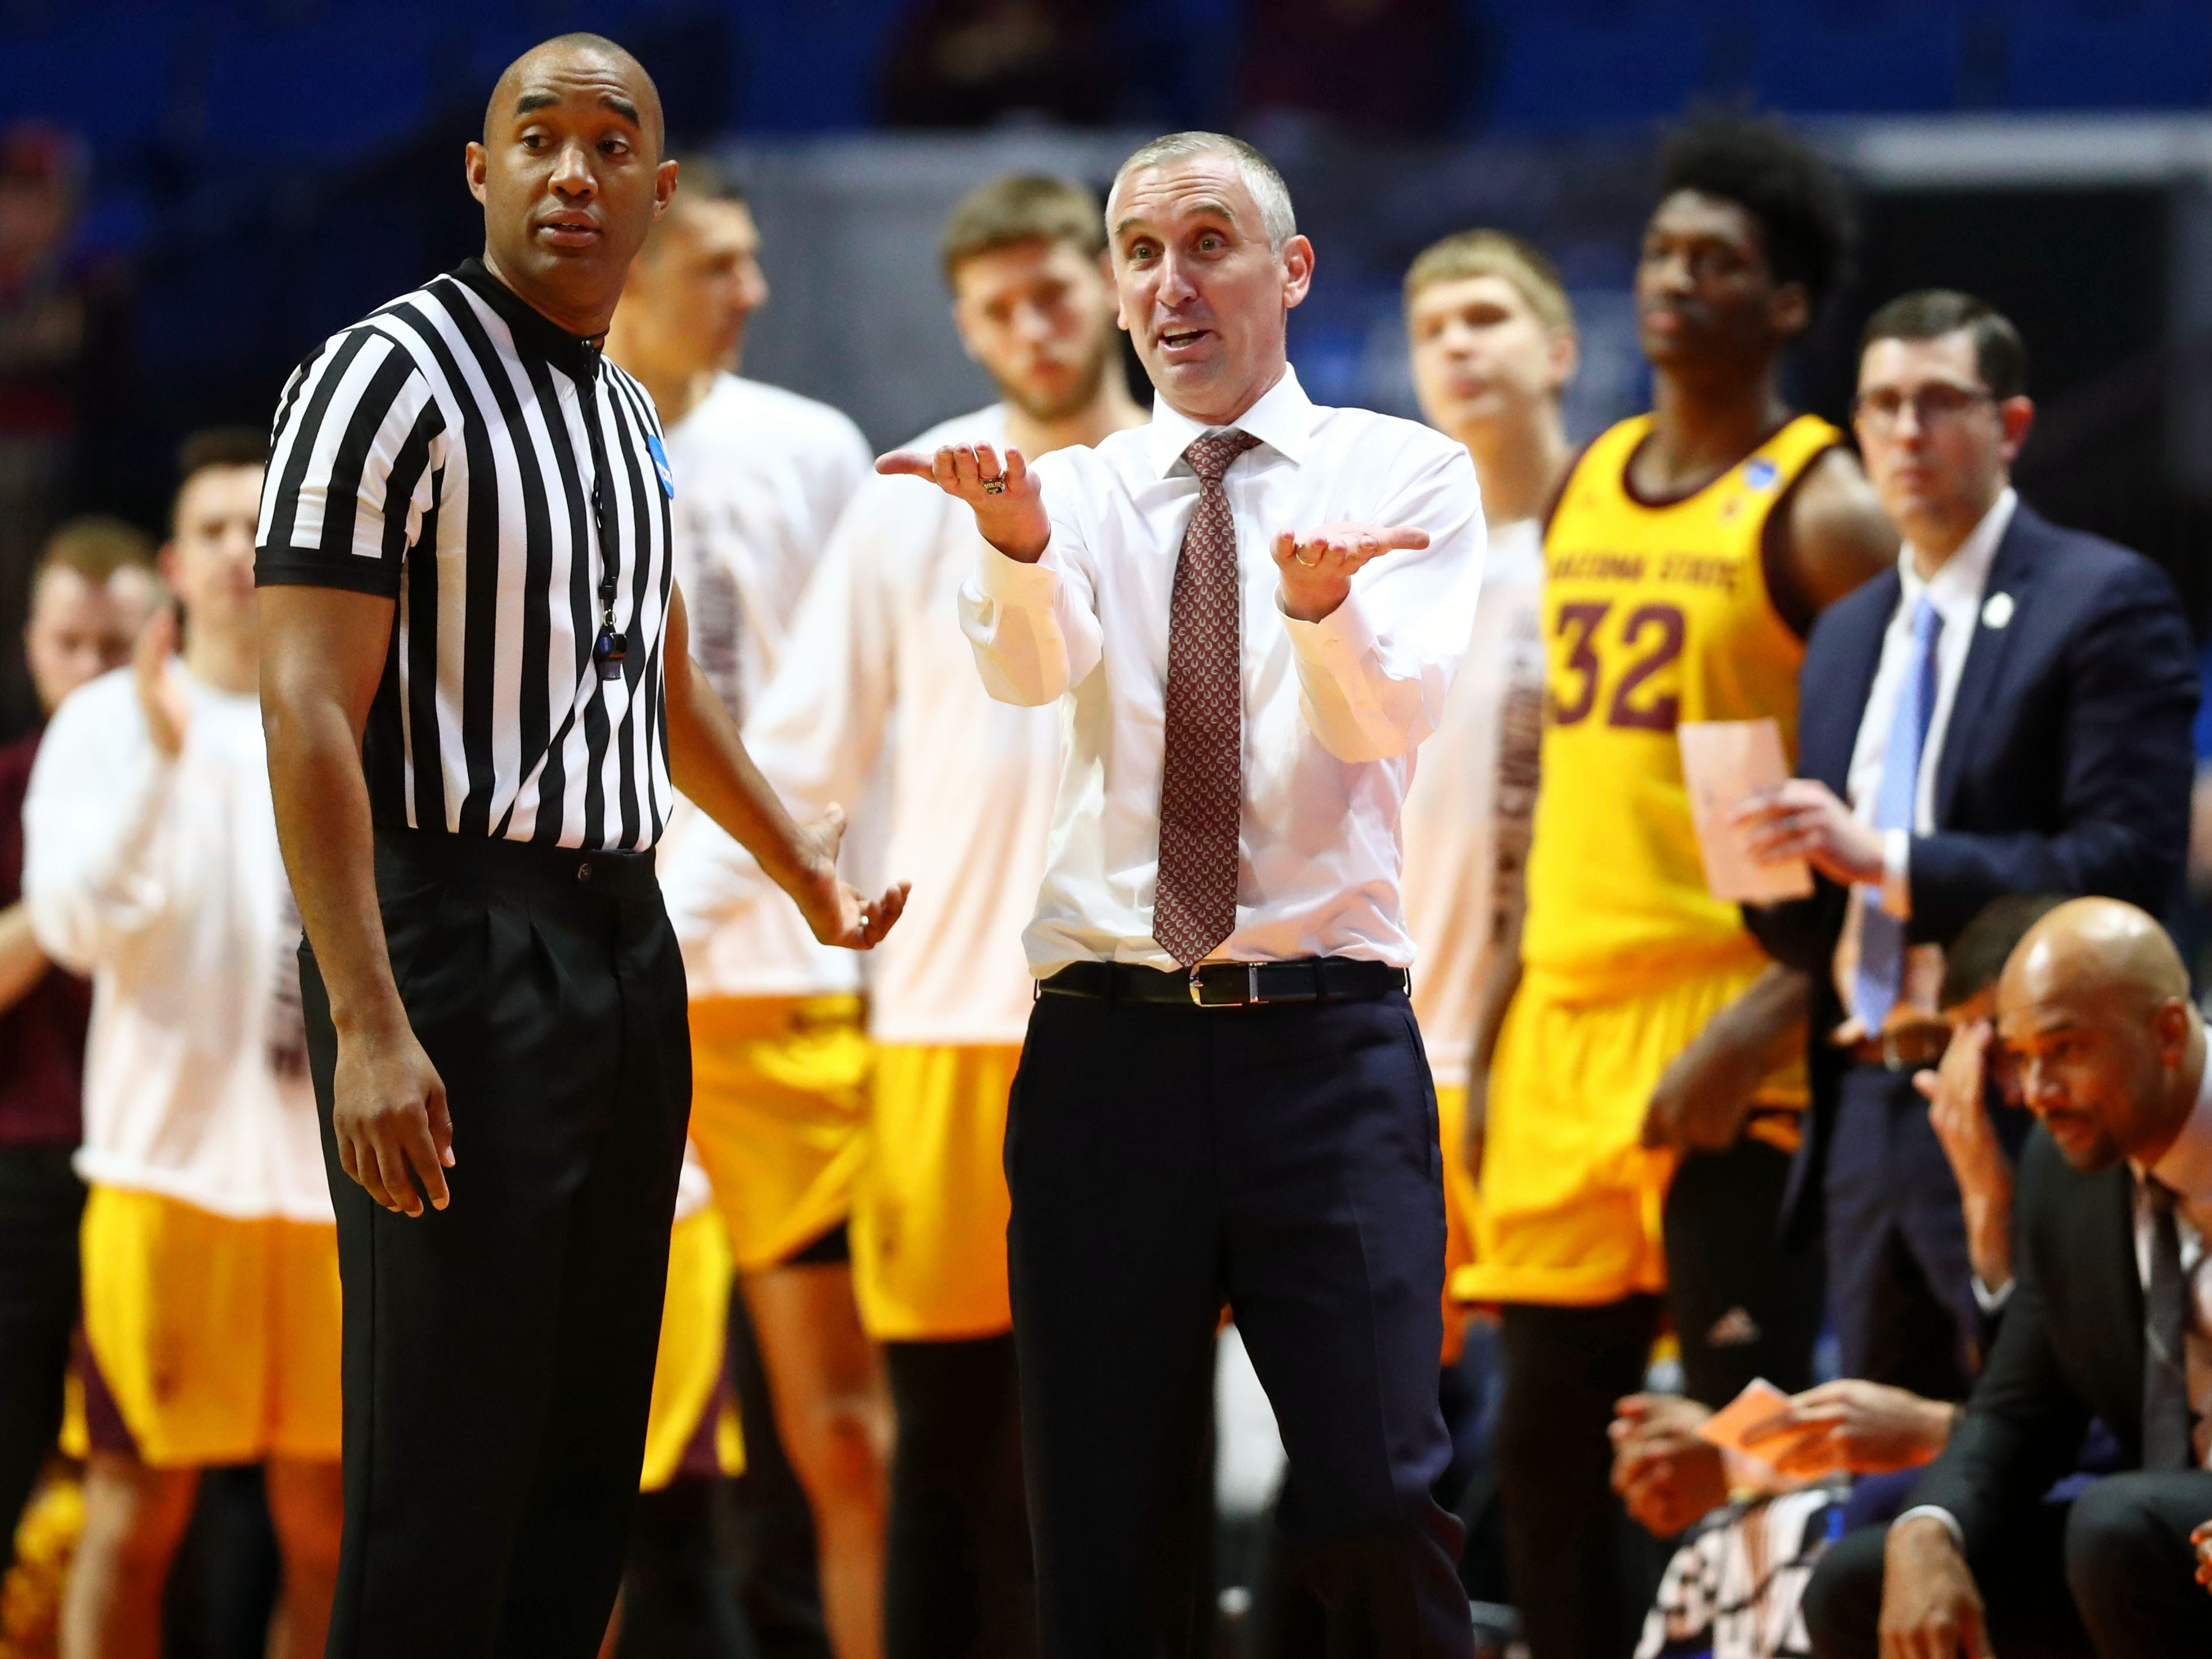 Mar 22, 2019; Tulsa, OK, USA; Arizona State Sun Devils head coach Bobby Hurley talks with an official about a call during the second half of their game against the Buffalo Bulls in the first round of the 2019 NCAA Tournament at BOK Center. The Buffalo Bulls won 91-74. Mandatory Credit: Mark J. Rebilas-USA TODAY Sports